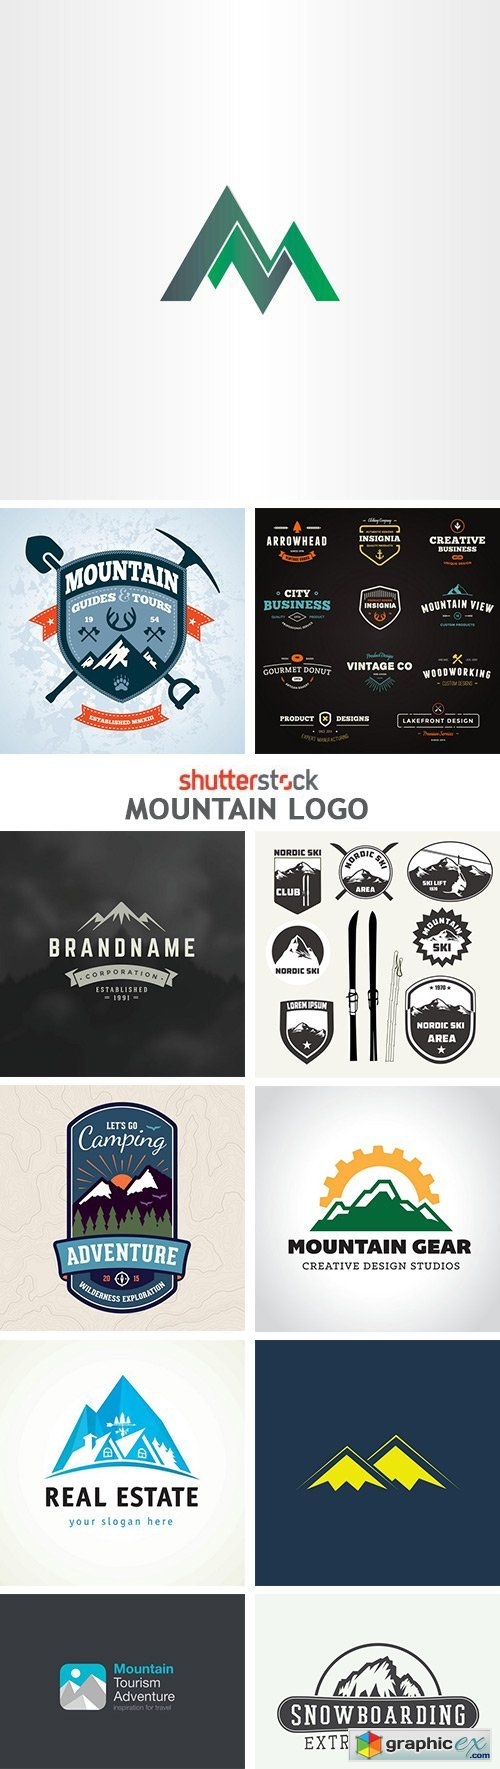 Mountain Logo - 25xEPS